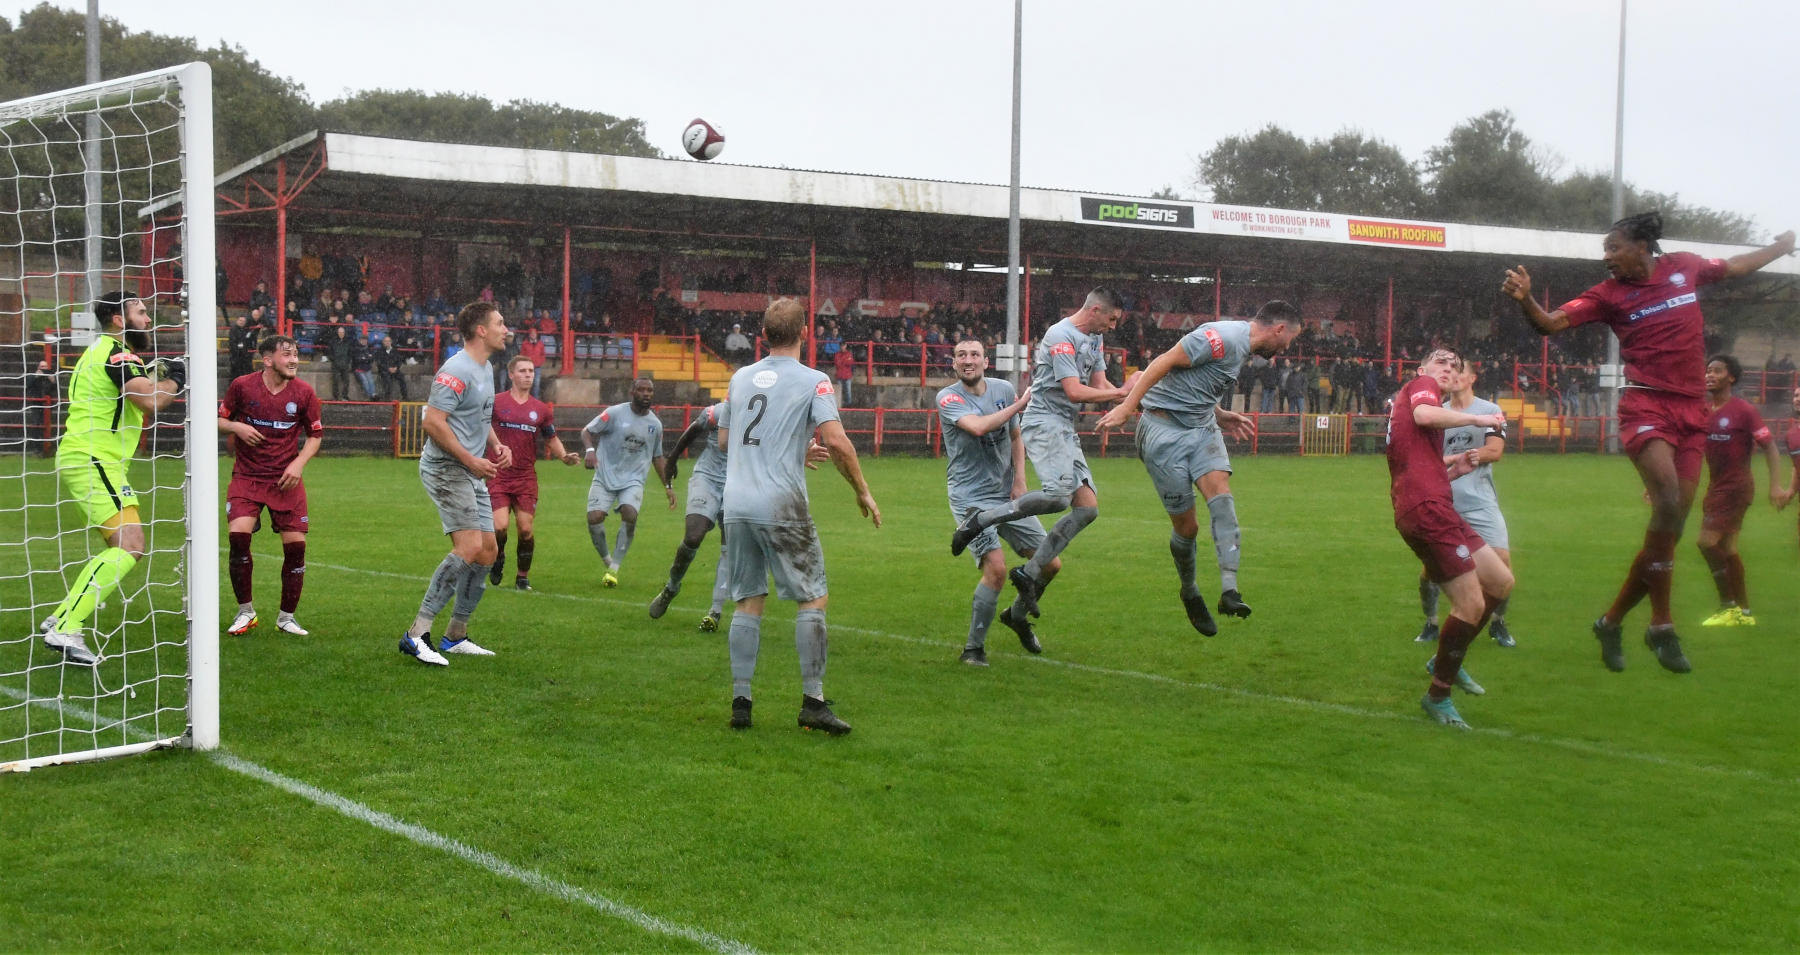 Donae-Lawrence-heads-in-an-early-attempt-on-the-Dunston-goal-ben-Challis